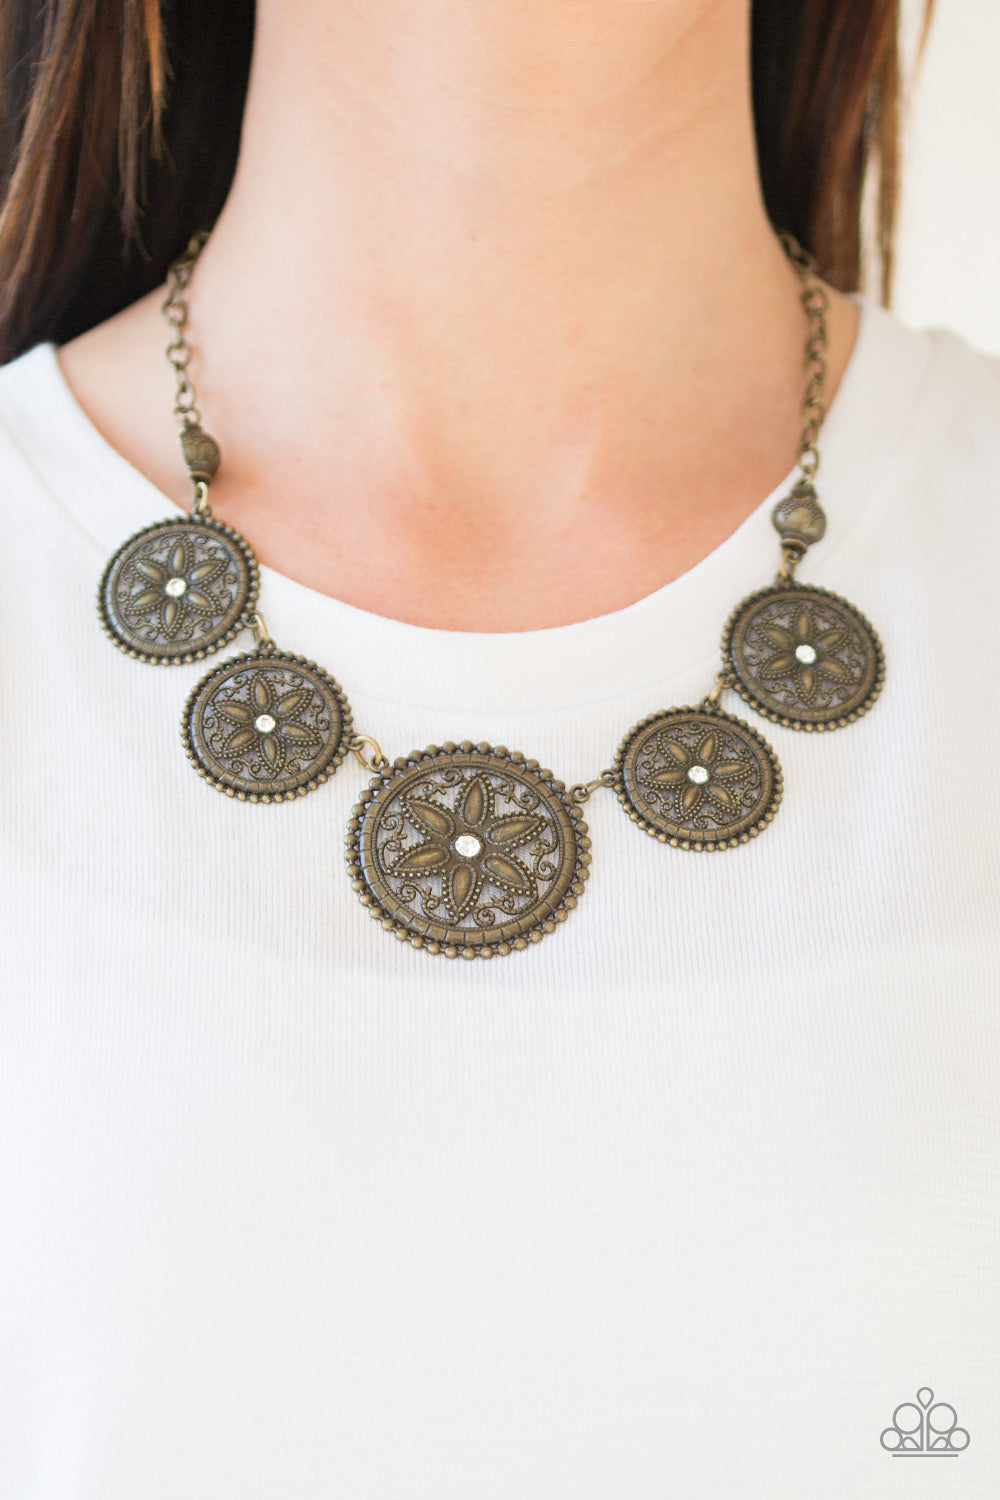 Paparazzi Jewelry & Accessories - Written In The STAR LILIES - Brass Necklace. Bling By Titia Boutique